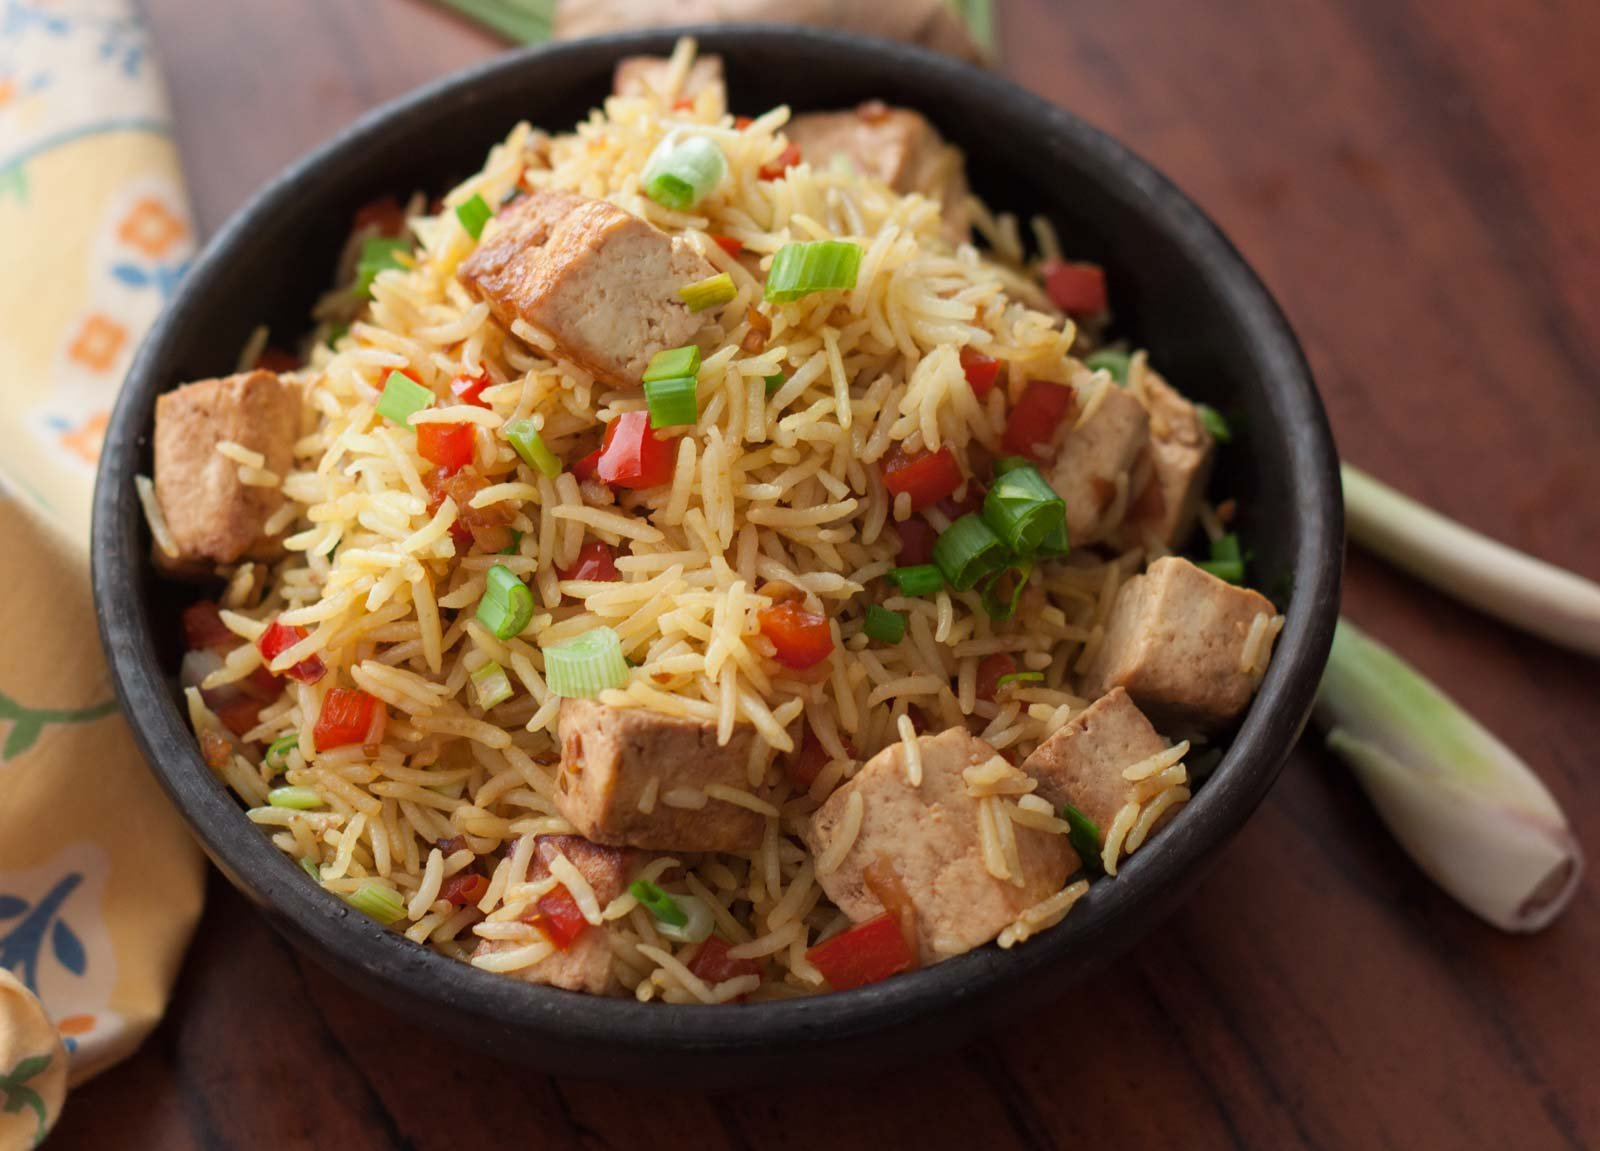 Lemongrass flavored tofu fried rice recipe by archanas kitchen lemongrass flavored tofu fried rice recipe ccuart Choice Image